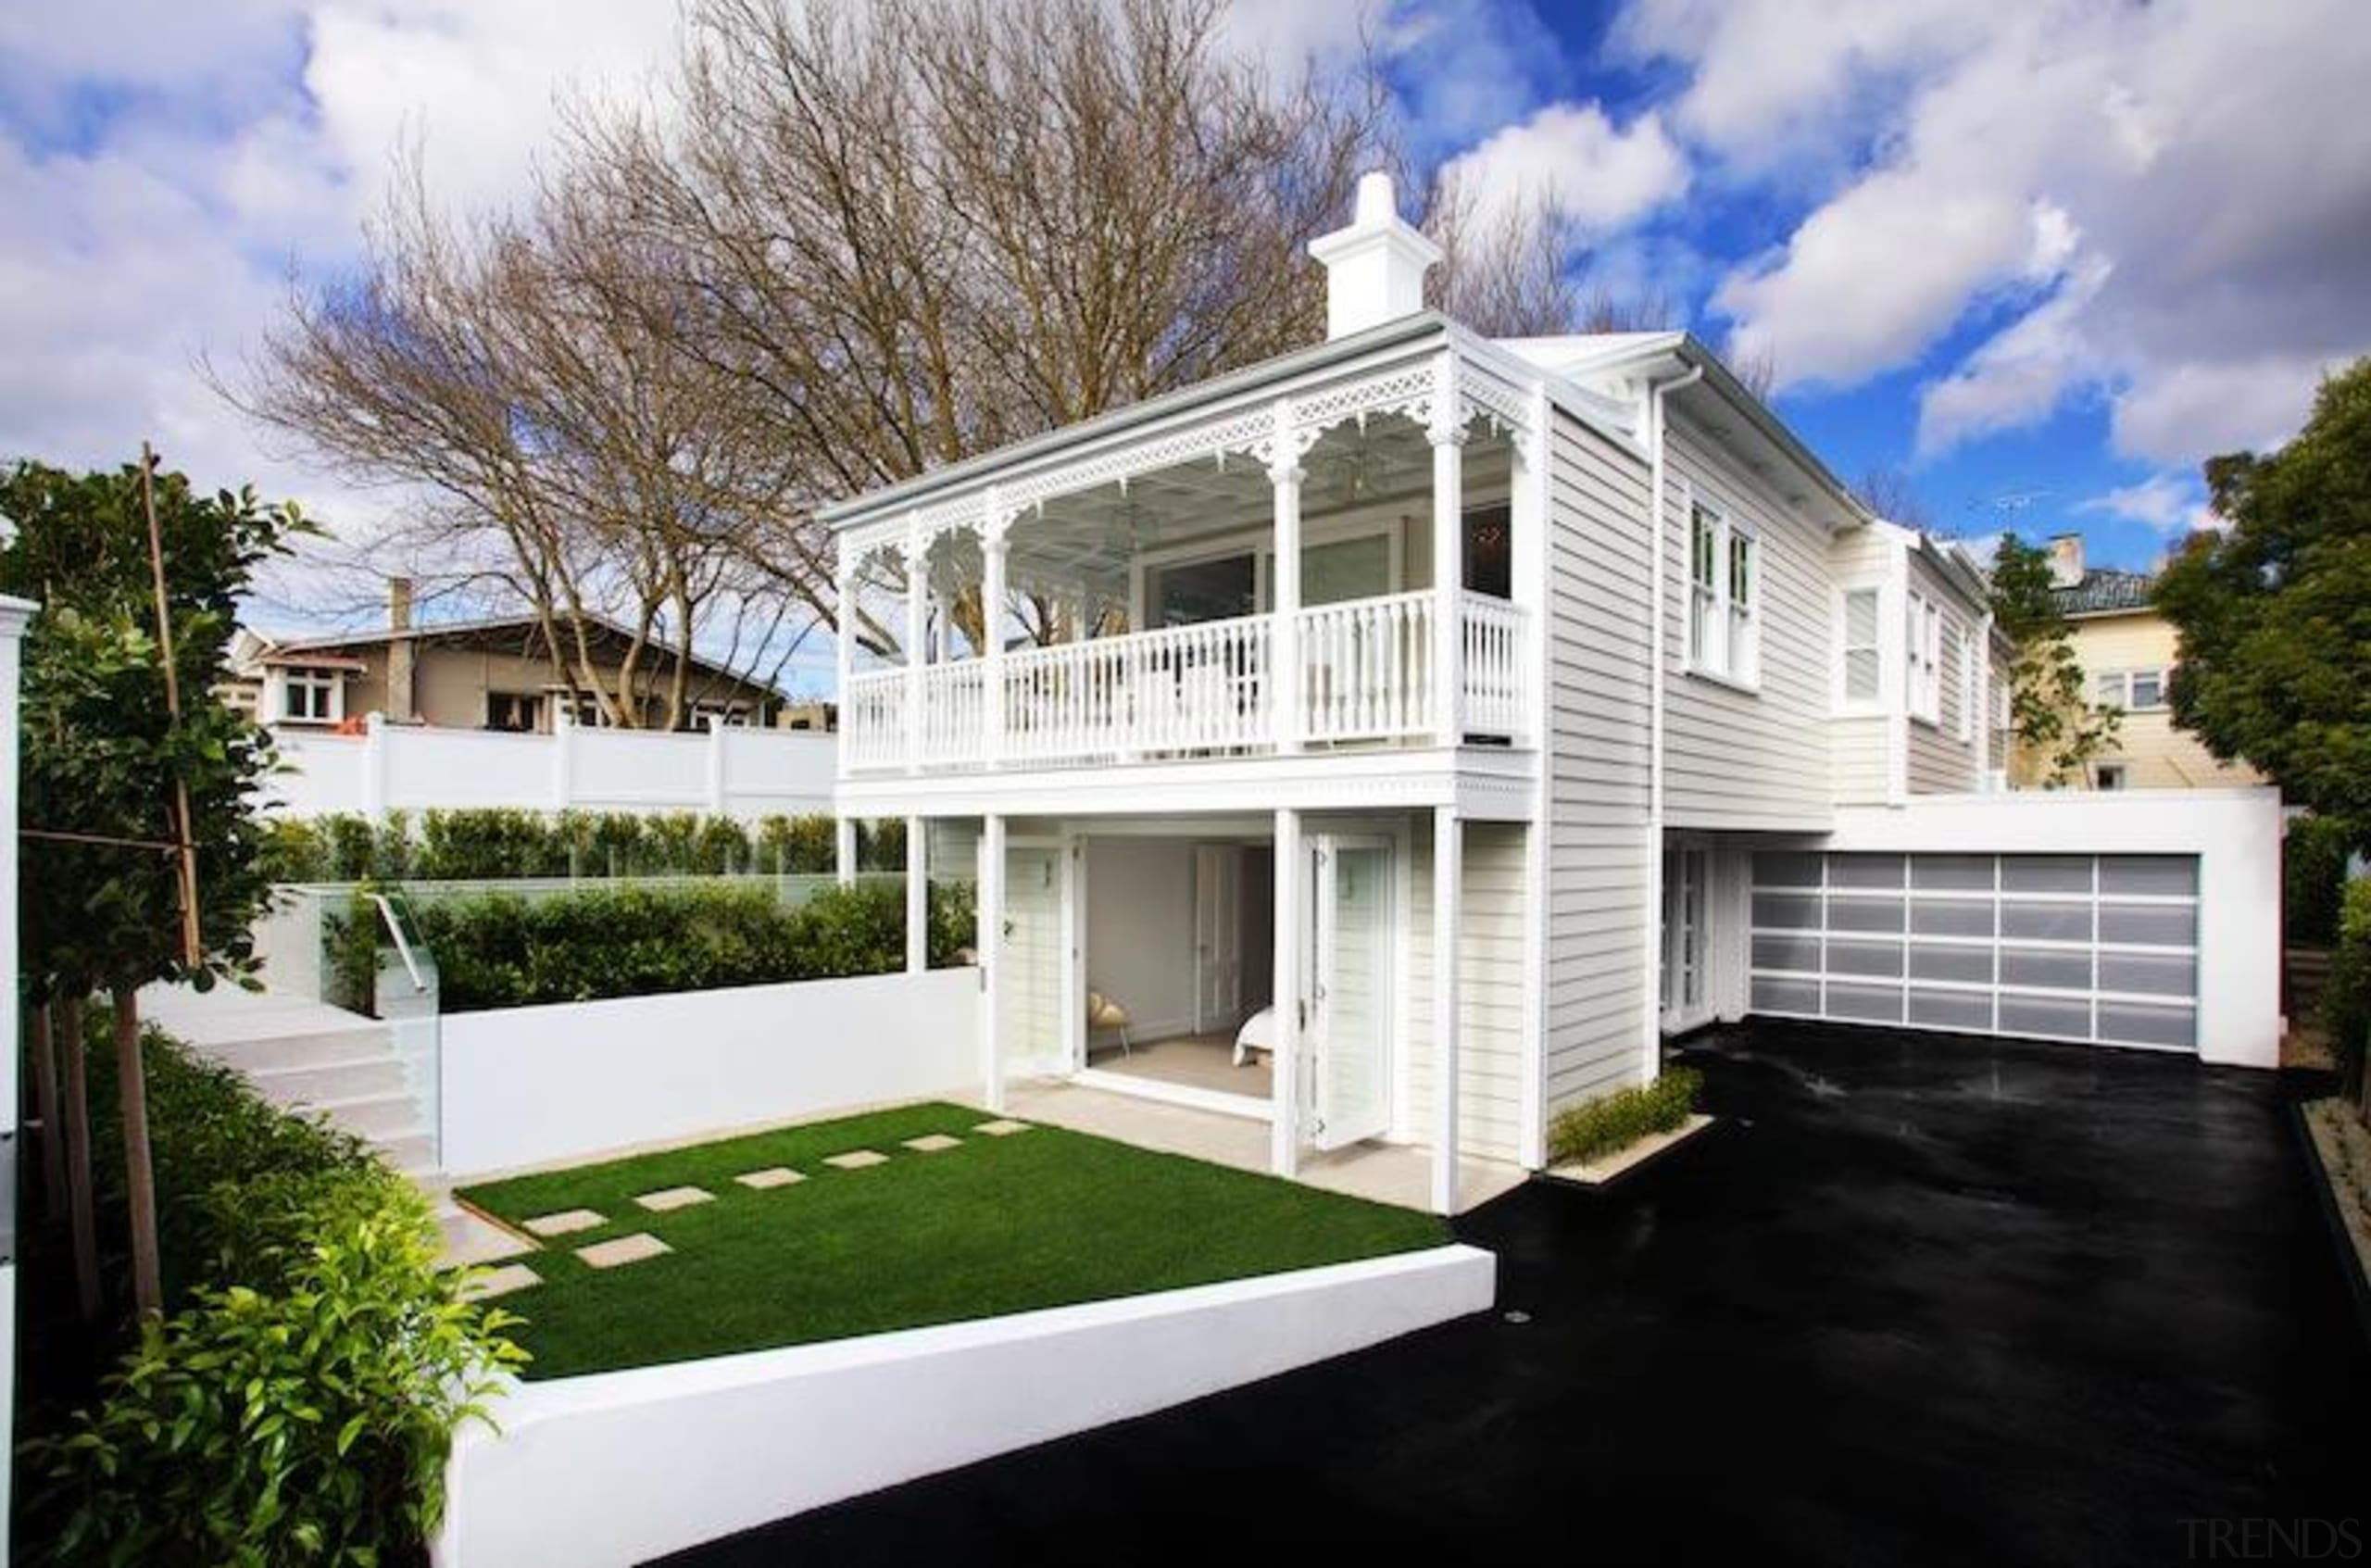 TIDA New Zealand Architect-designed Homes - 2015 Trends architecture, building, cottage, estate, facade, home, house, property, real estate, residential area, siding, window, white